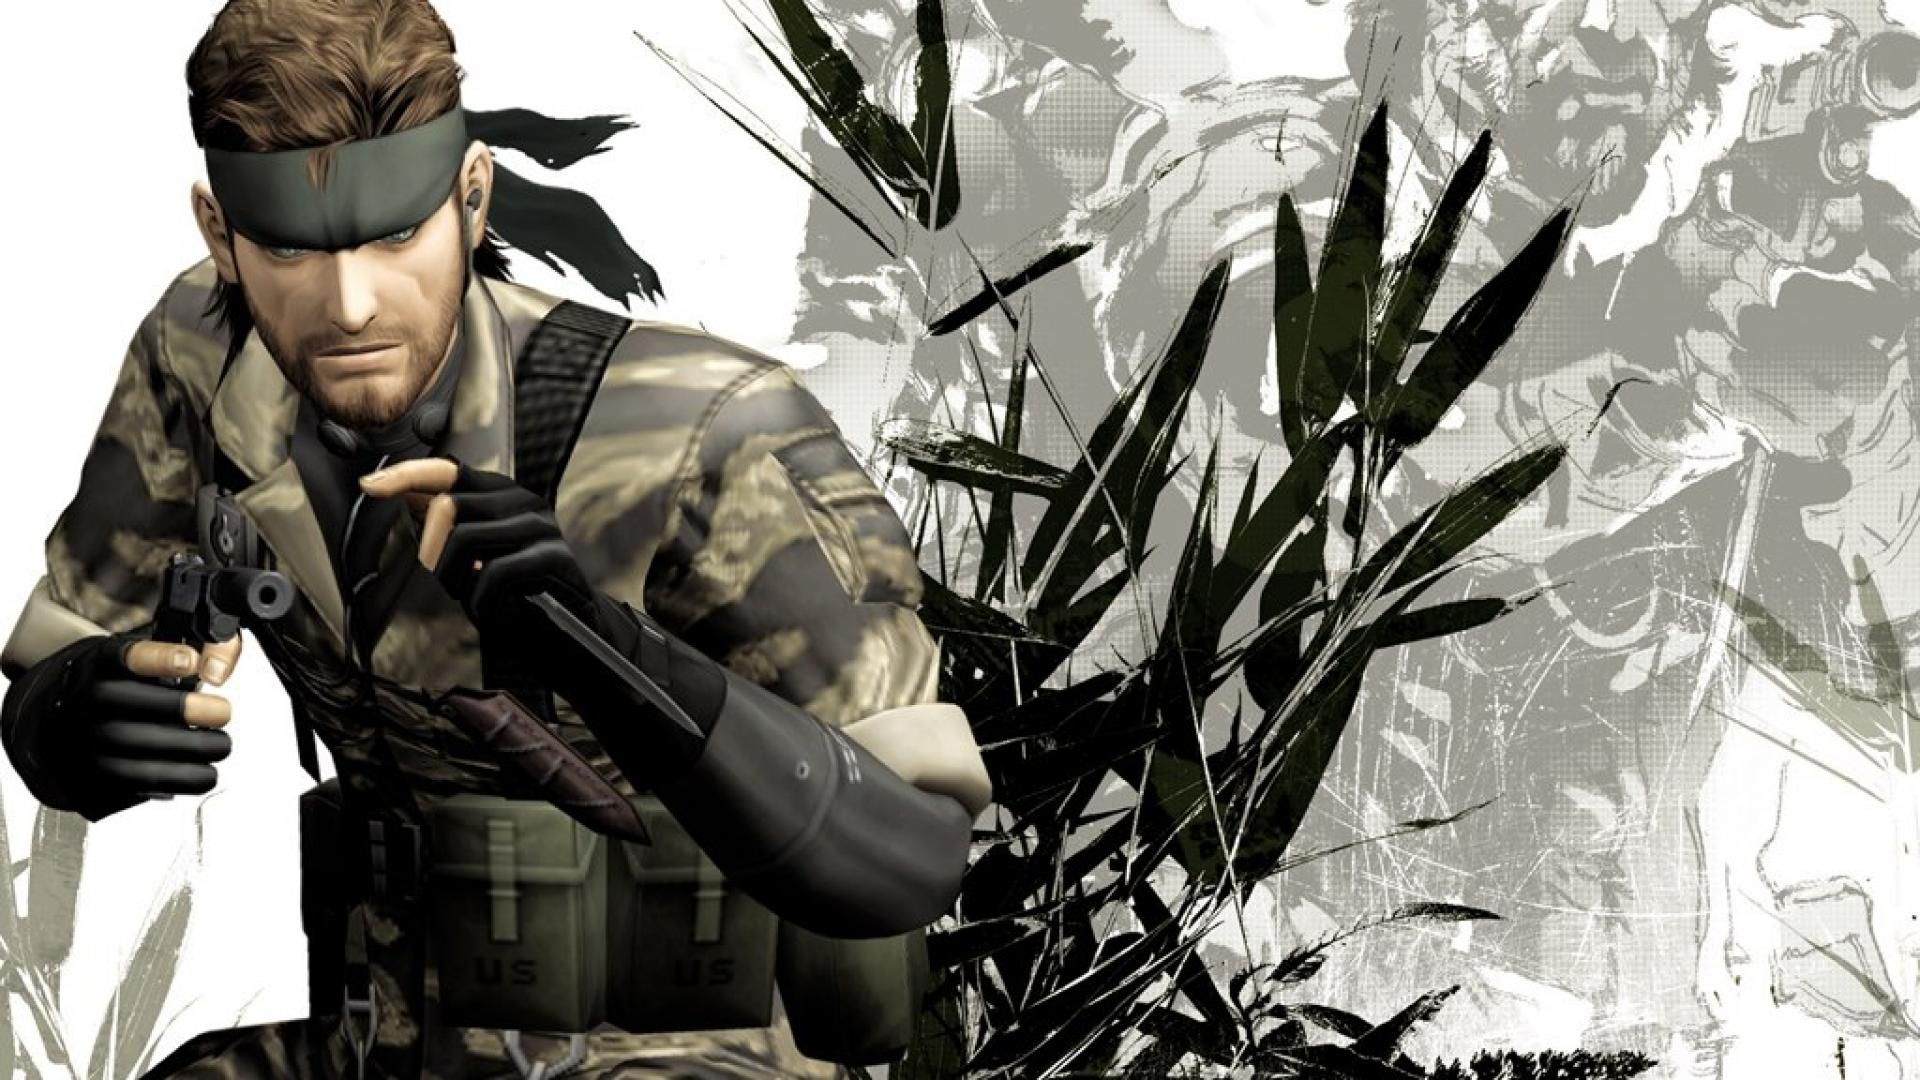 naked snake scientist by - photo #39